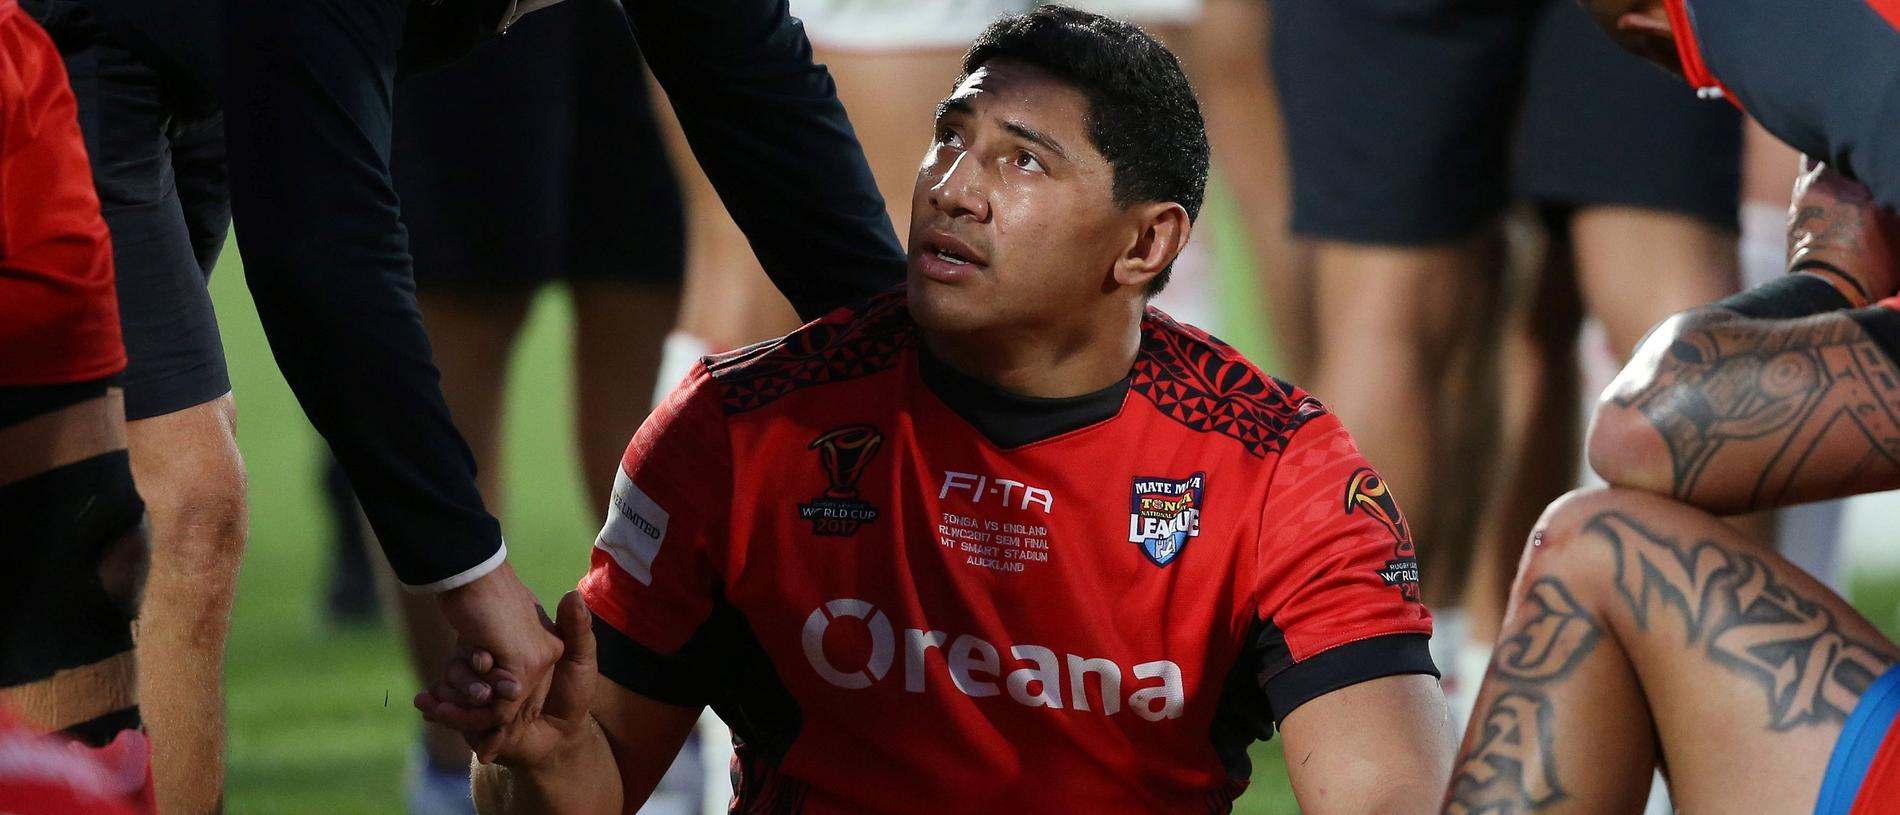 Tonga's Jason Taumalolo (C) reacts after the Rugby League World Cup men's semi-final match between Tonga and England at Mt Smart Stadium in Auckland on November 25, 2017. / AFP PHOTO / Michael BRADLEY